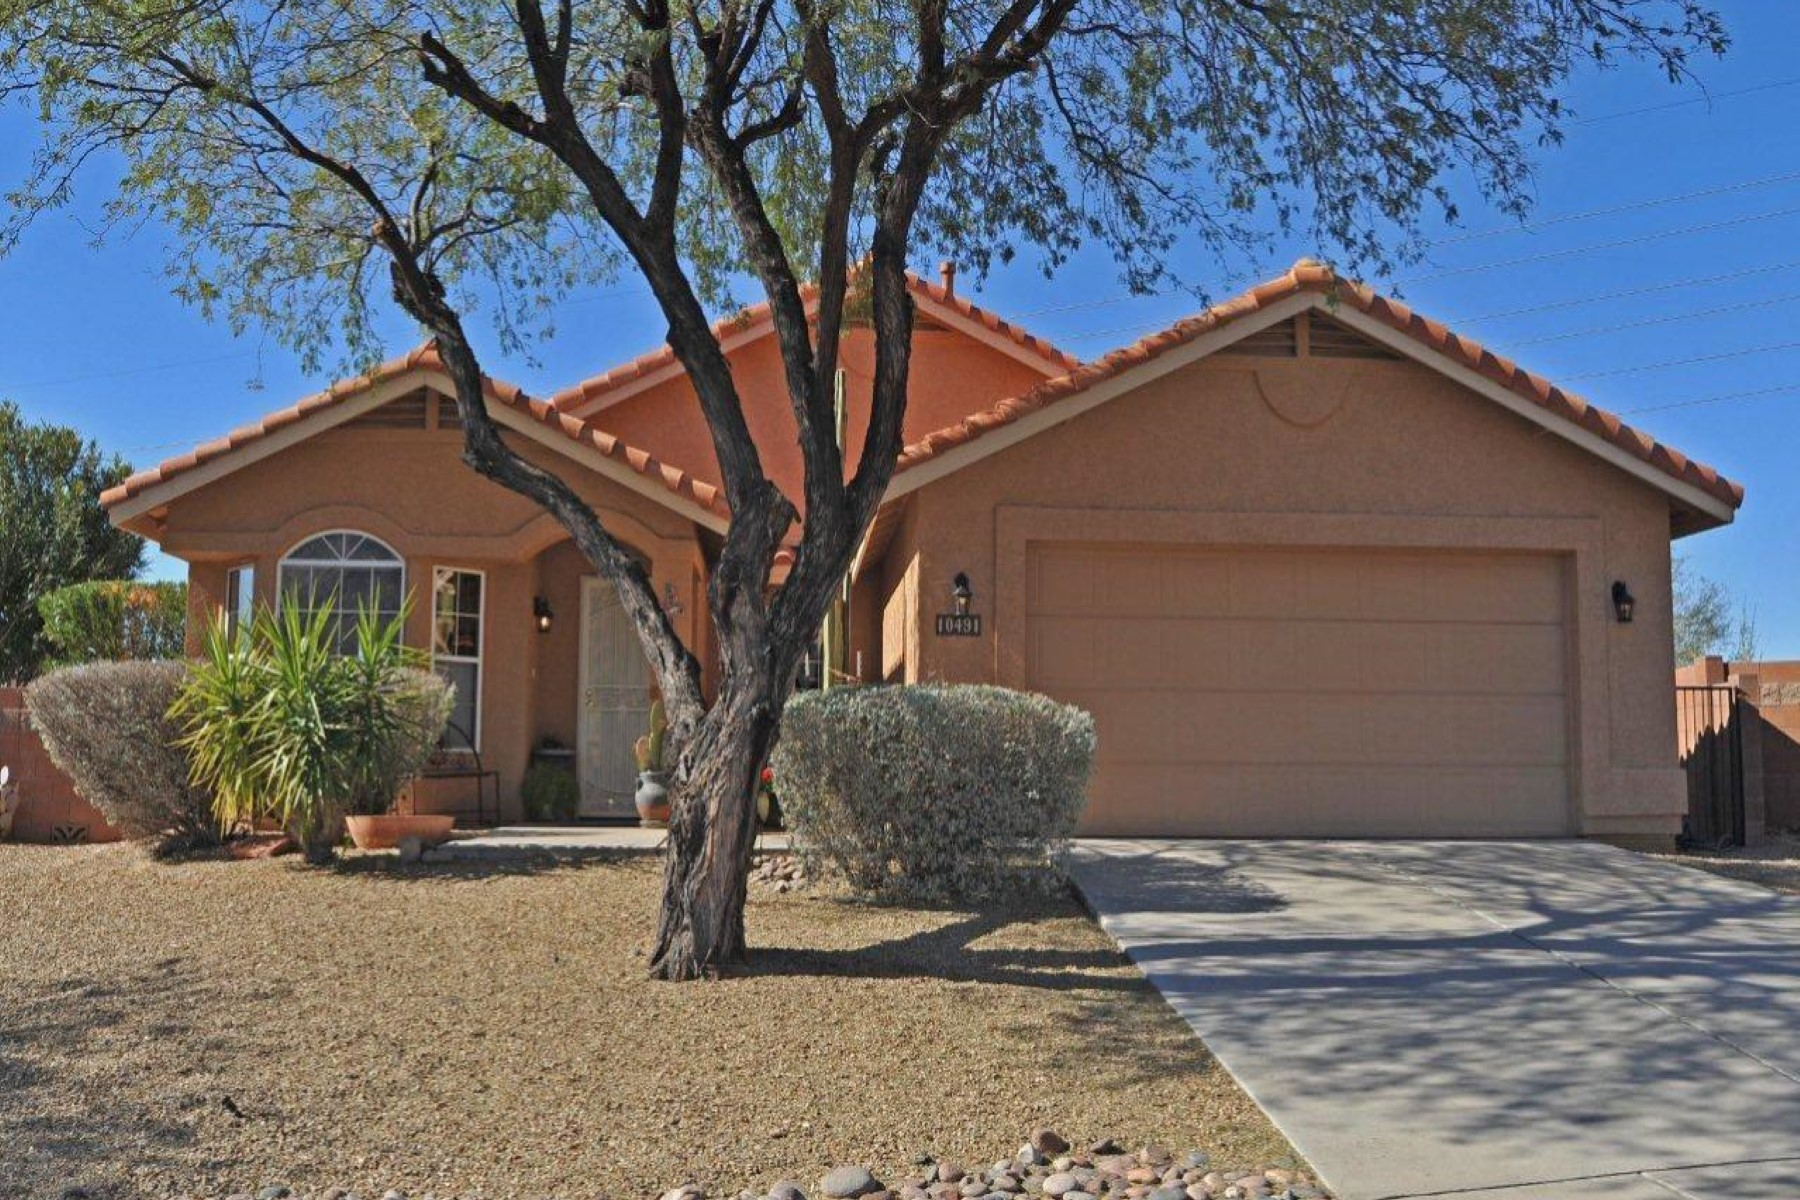 Single Family Home for Sale at Lovely home located near River Front Park 10491 N Calle Verano Seco Oro Valley, Arizona 85737 United States